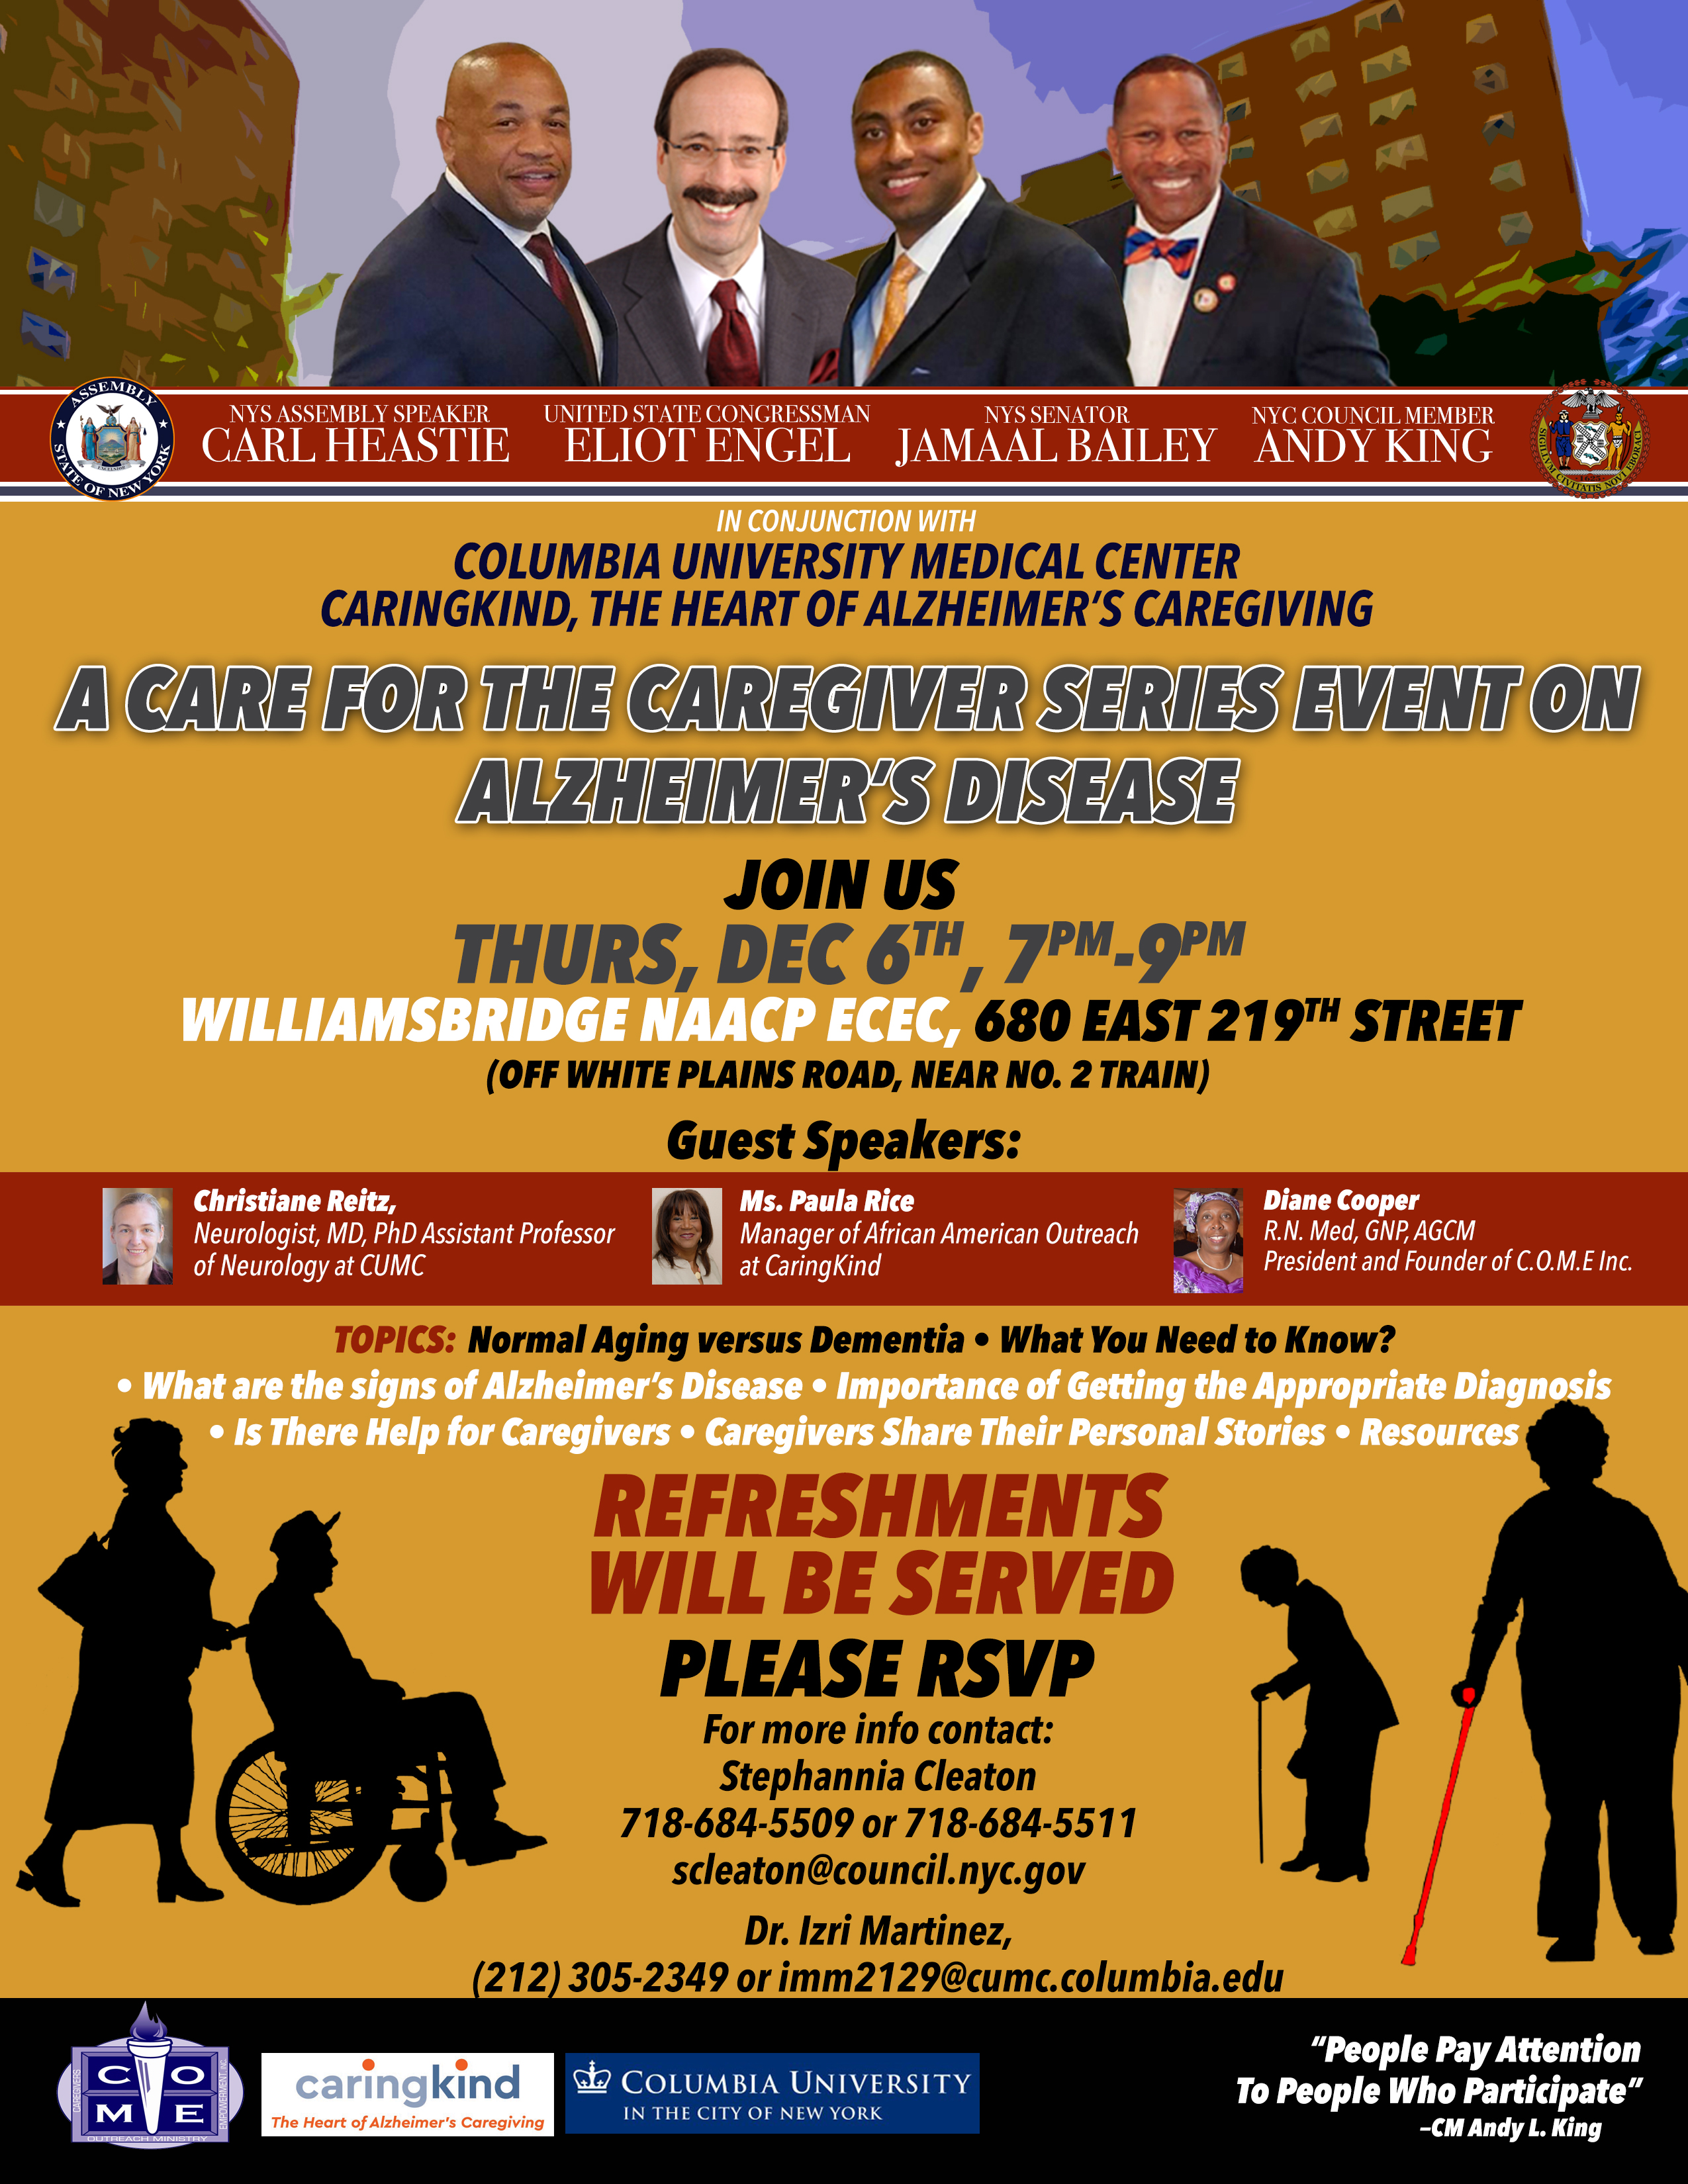 A Care for the Cargiver Series Event on Alzheimer's Disease